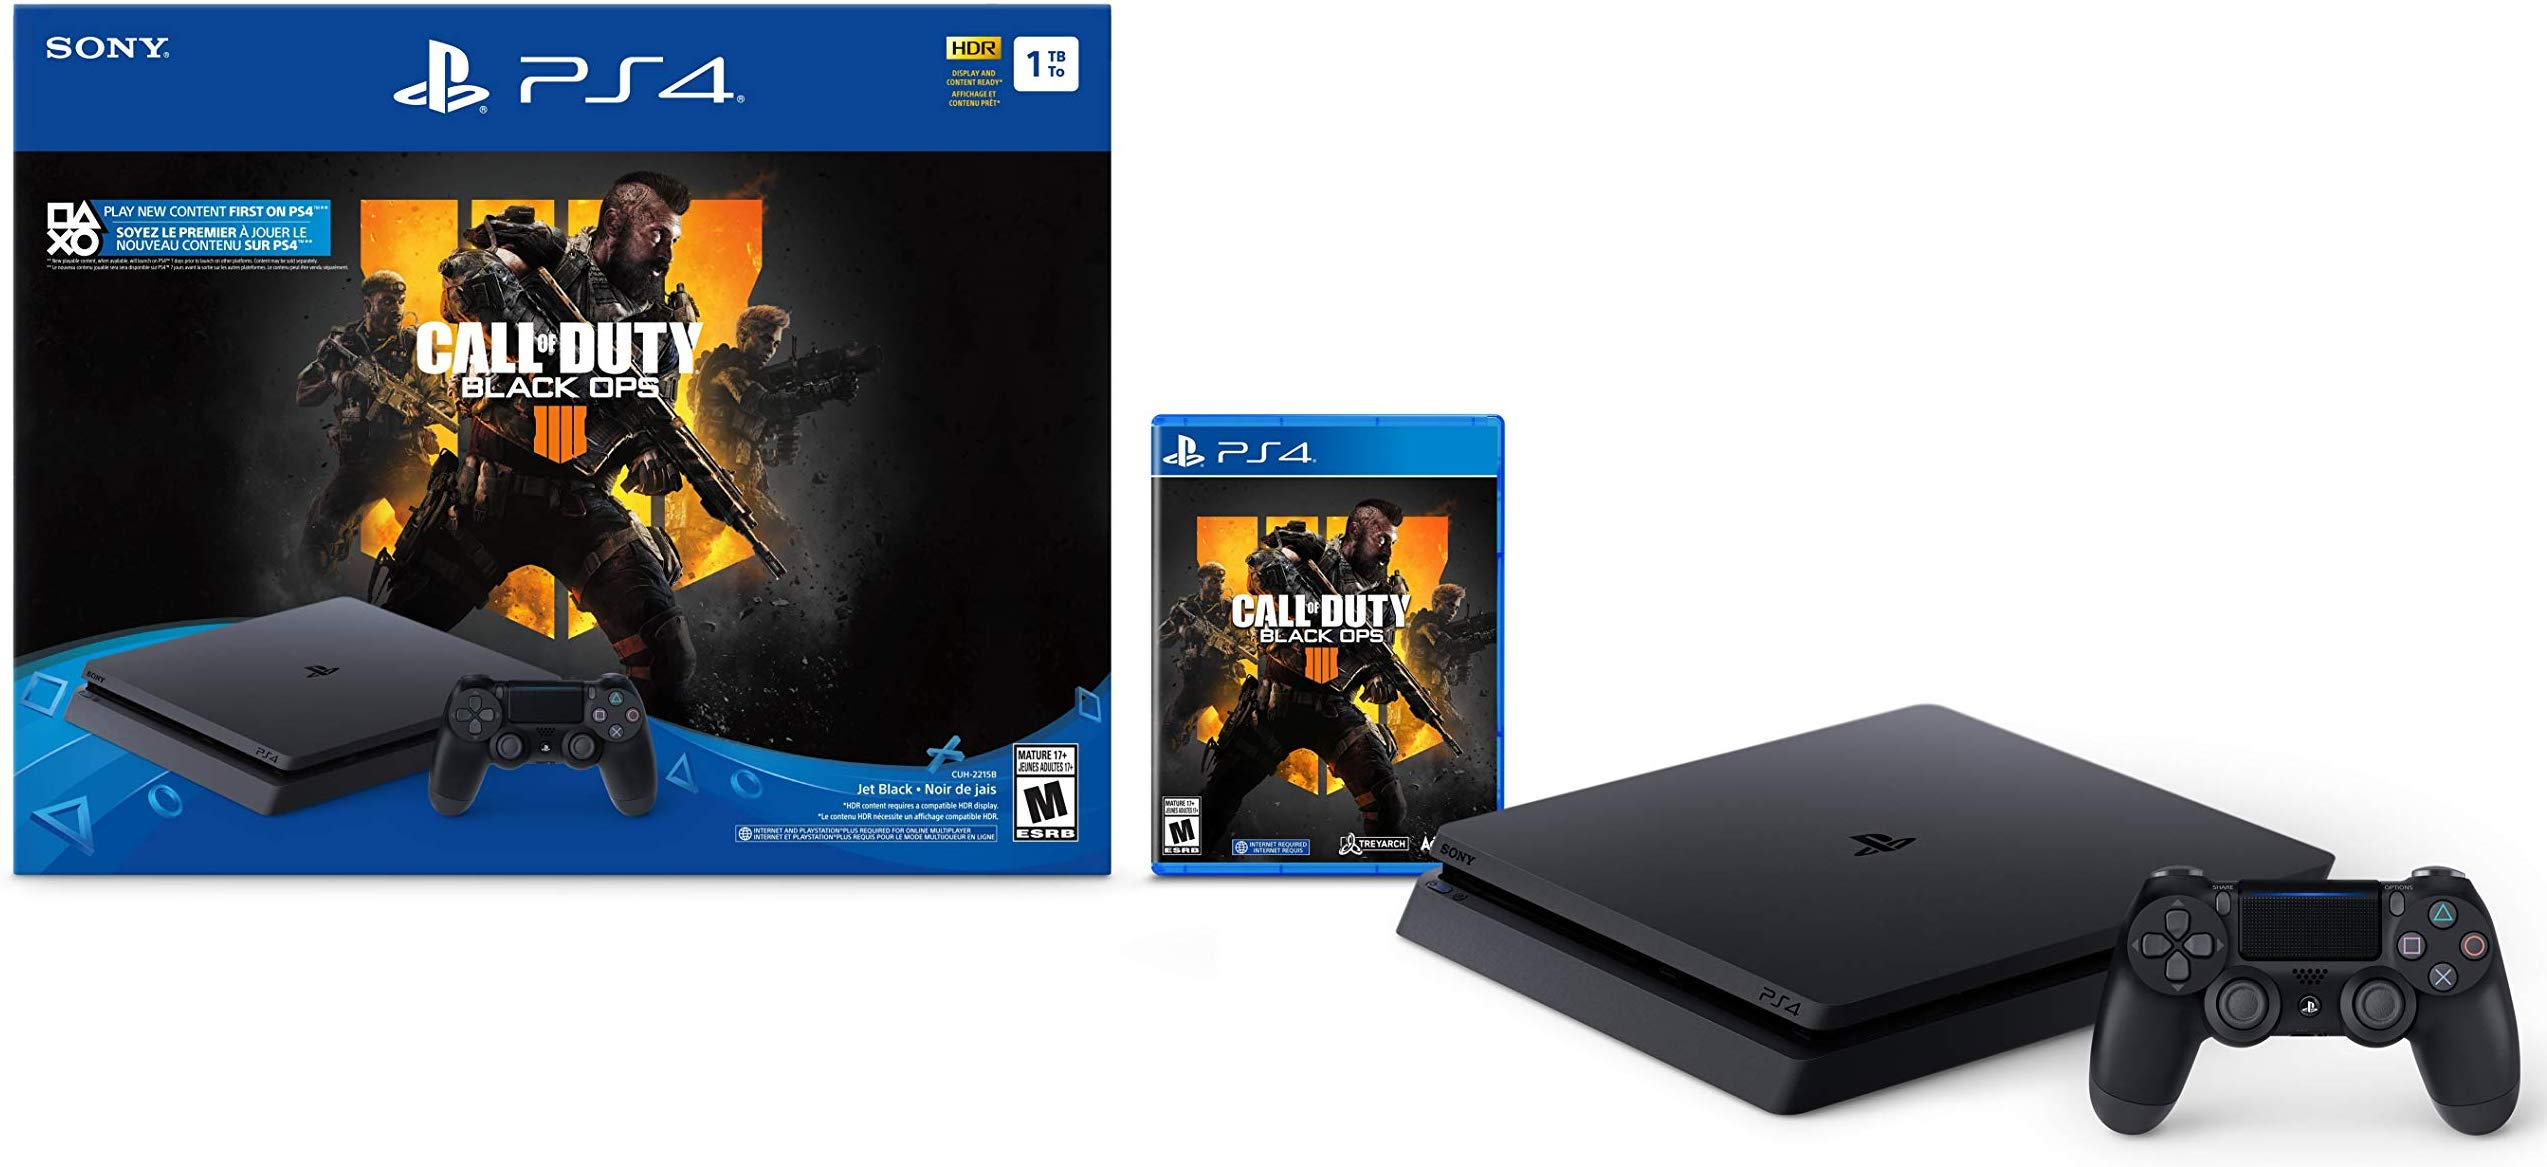 PlayStation 4 Slim 1TB Console - Call of Duty: Black Ops 4 Bundle includes a FREE pair of thumbgrips